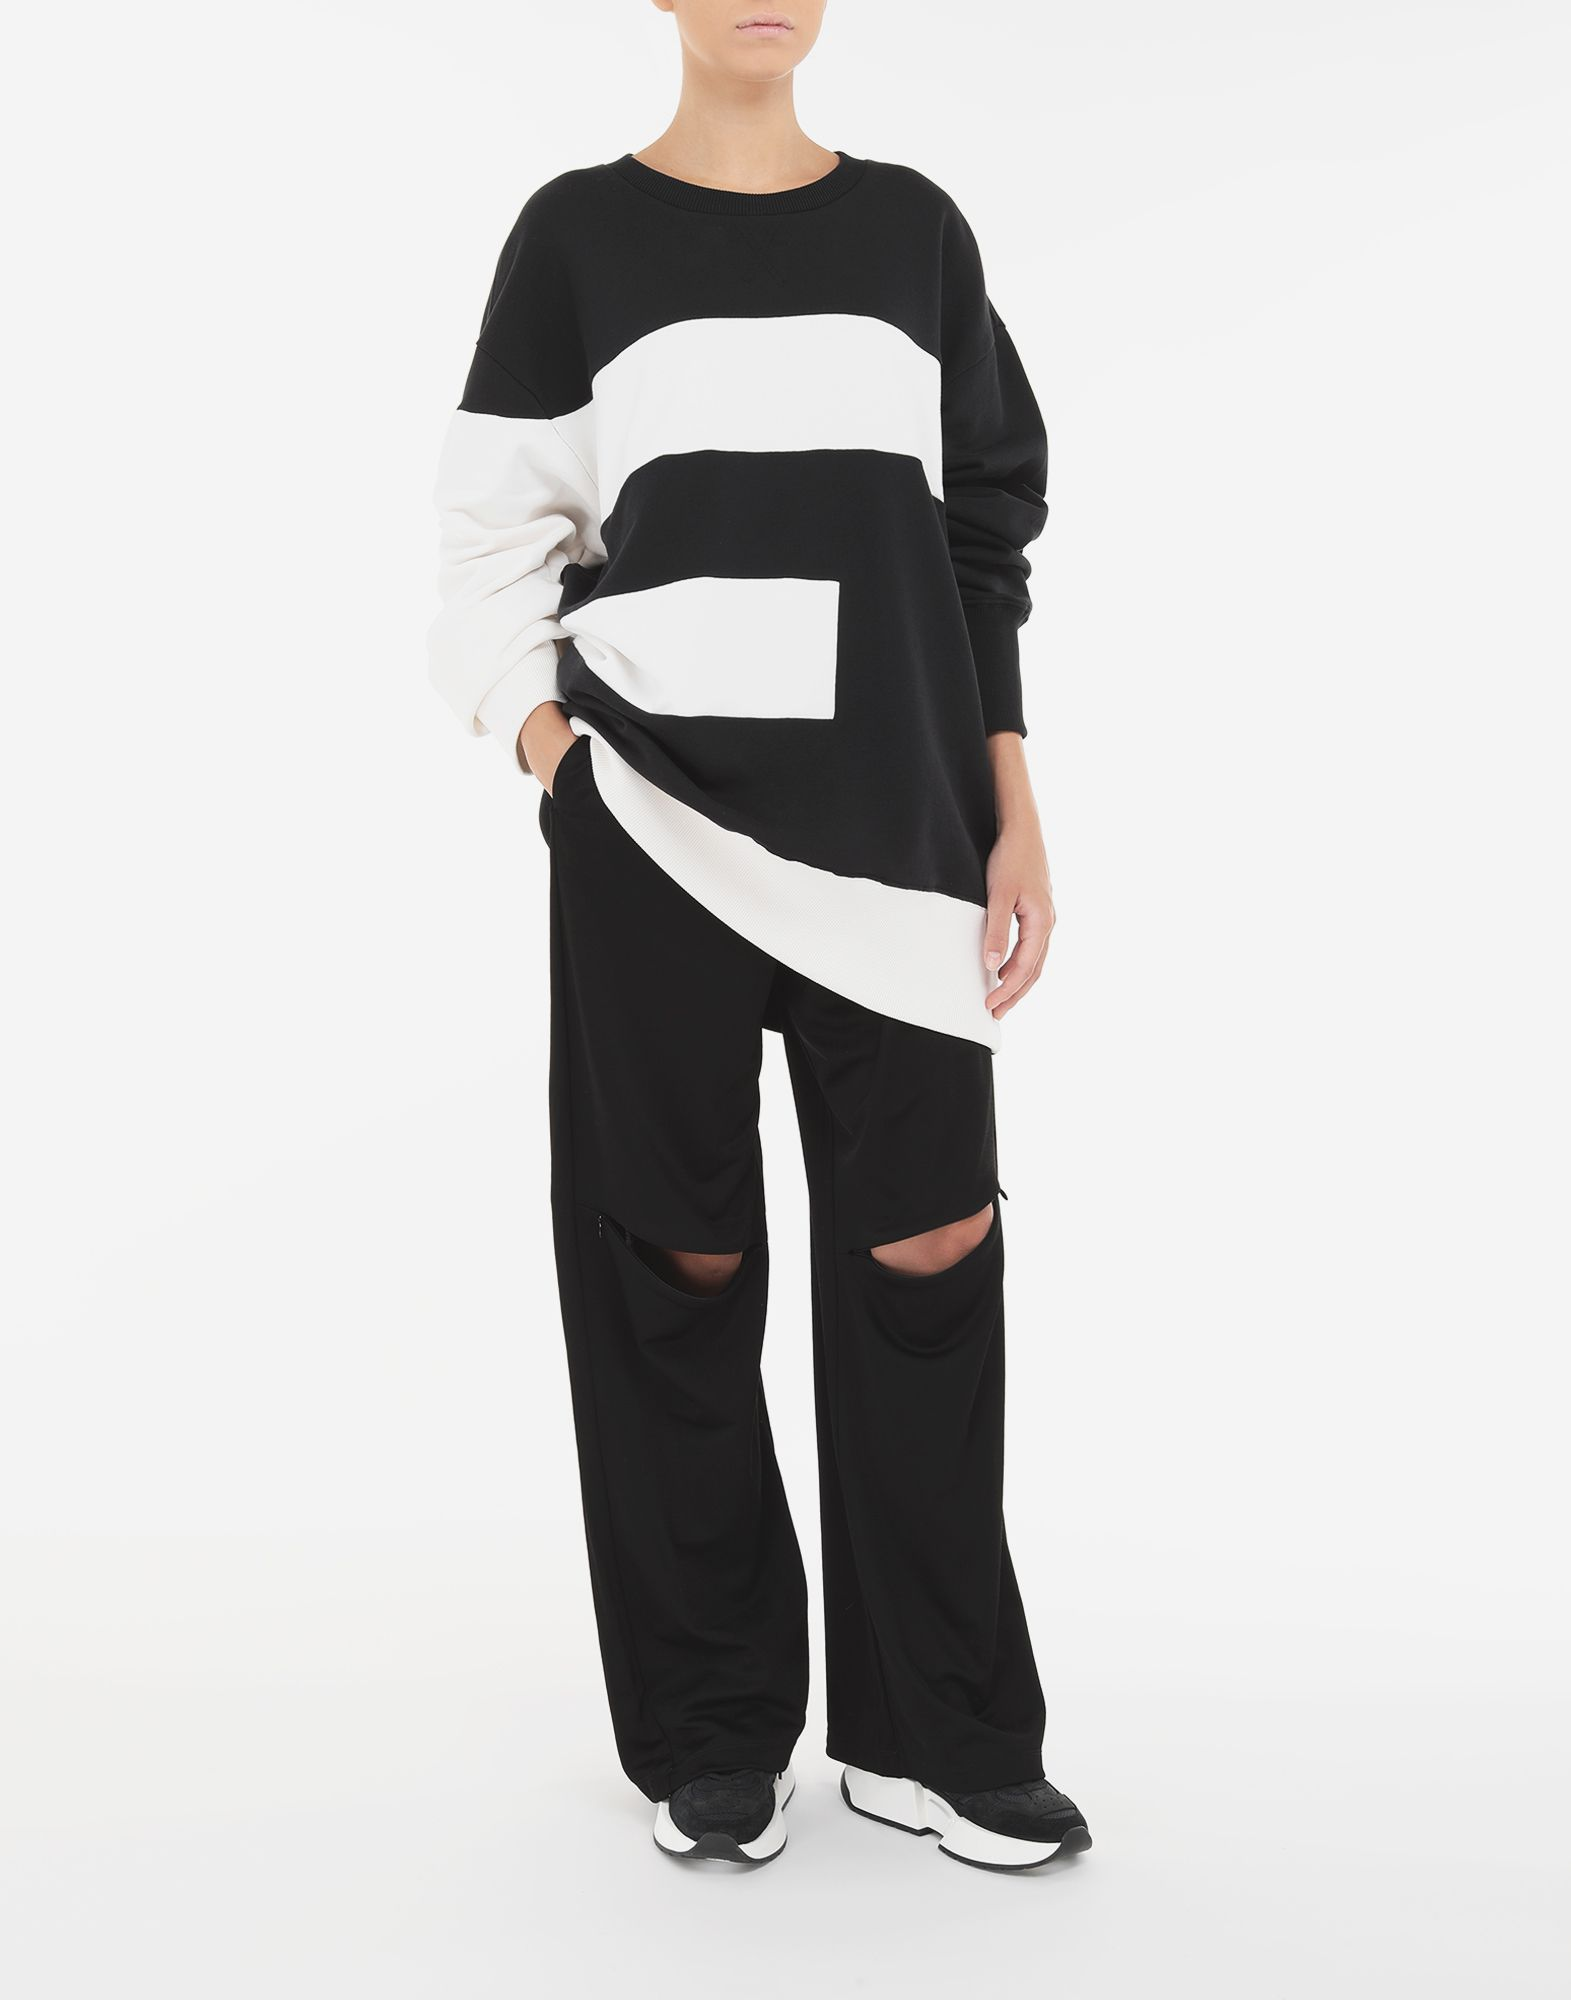 MM6 MAISON MARGIELA 'E' sweatshirt Sweatshirt Woman d